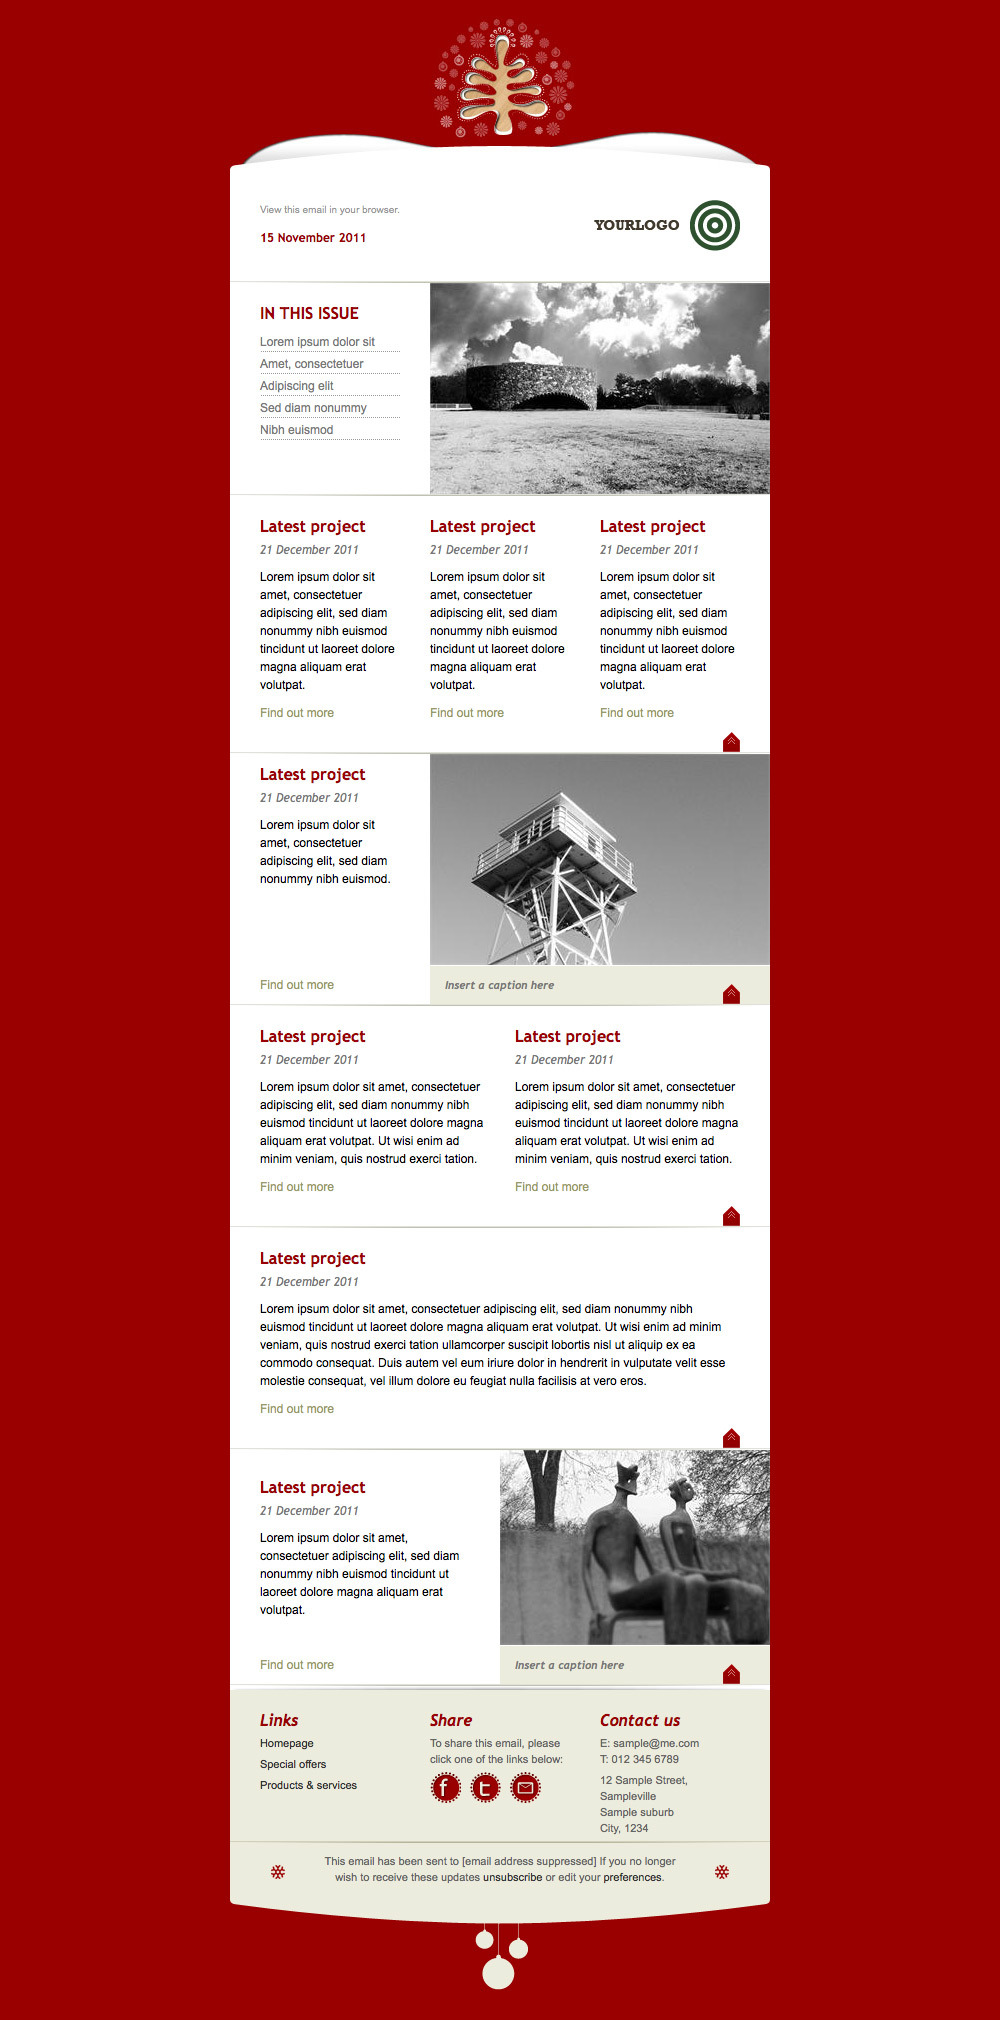 Simply Christmas 2 - Example layout of Red template applied for newsletter.